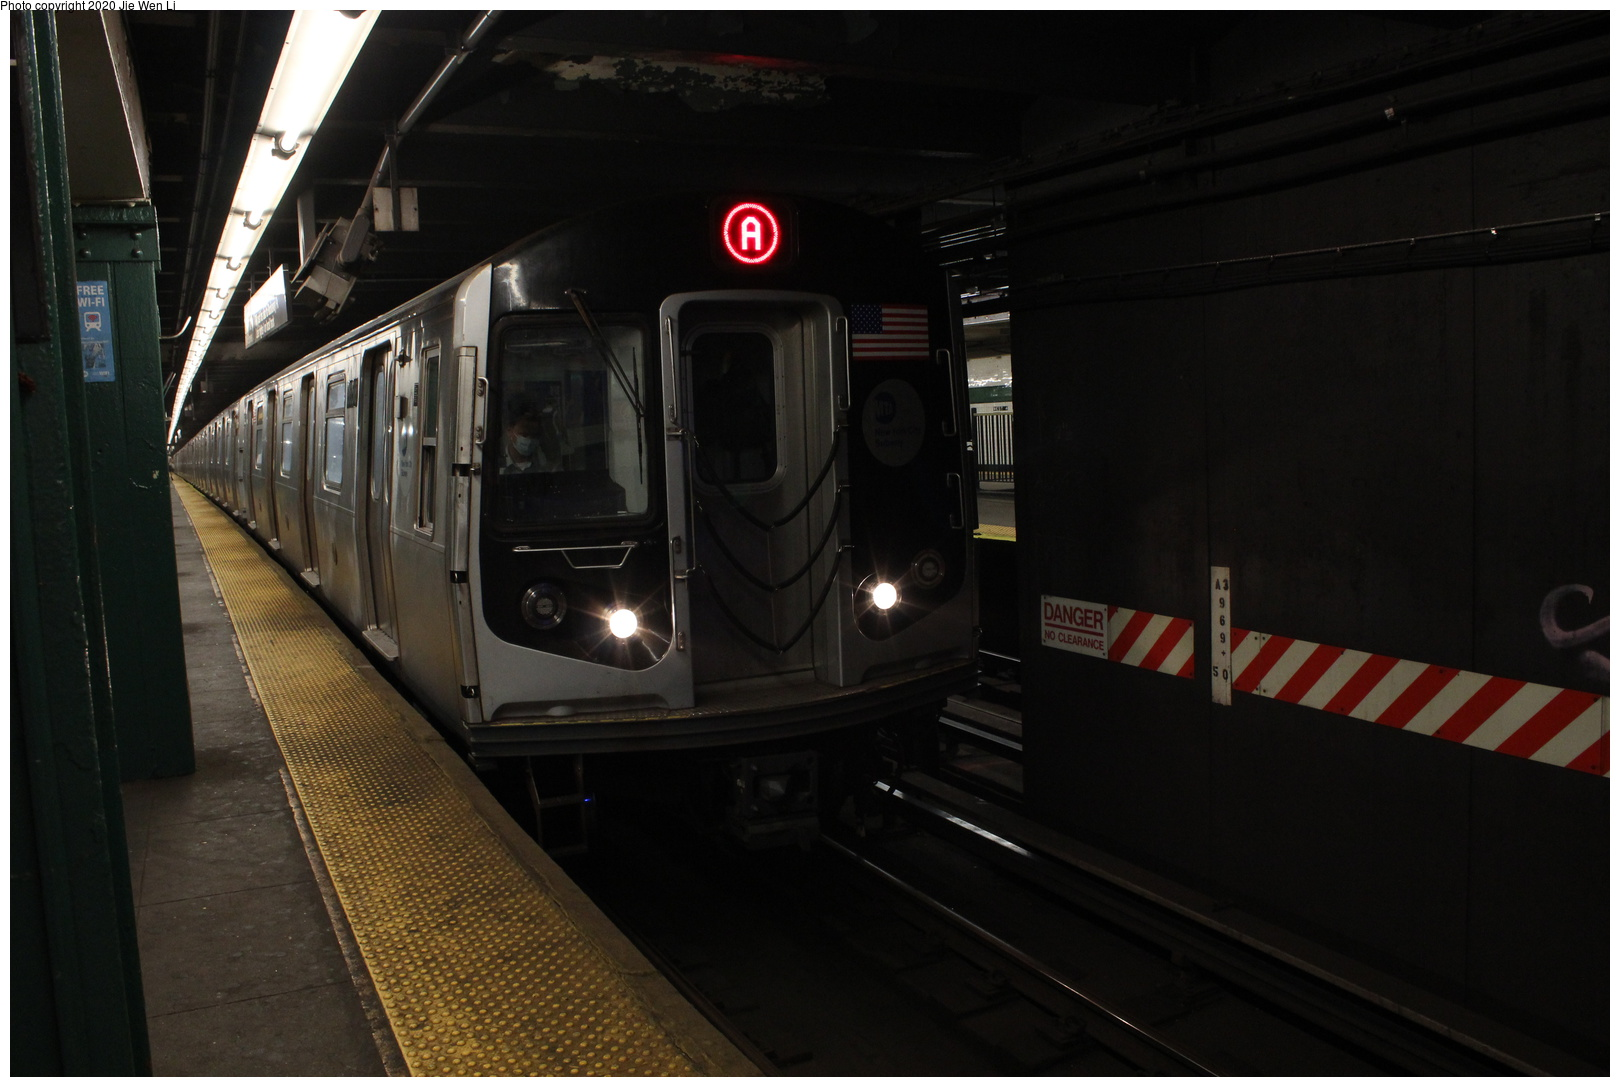 (245k, 1044x684)<br><b>Country:</b> United States<br><b>City:</b> New York<br><b>System:</b> New York City Transit<br><b>Line:</b> IRT Flushing Line<br><b>Location:</b> Willets Point/Mets (fmr. Shea Stadium) <br><b>Route:</b> 7 Special<br><b>Car:</b> R-29 (St. Louis, 1962)  <br><b>Photo by:</b> Joel Shanus<br><b>Date:</b> 1964<br><b>Viewed (this week/total):</b> 1 / 1944